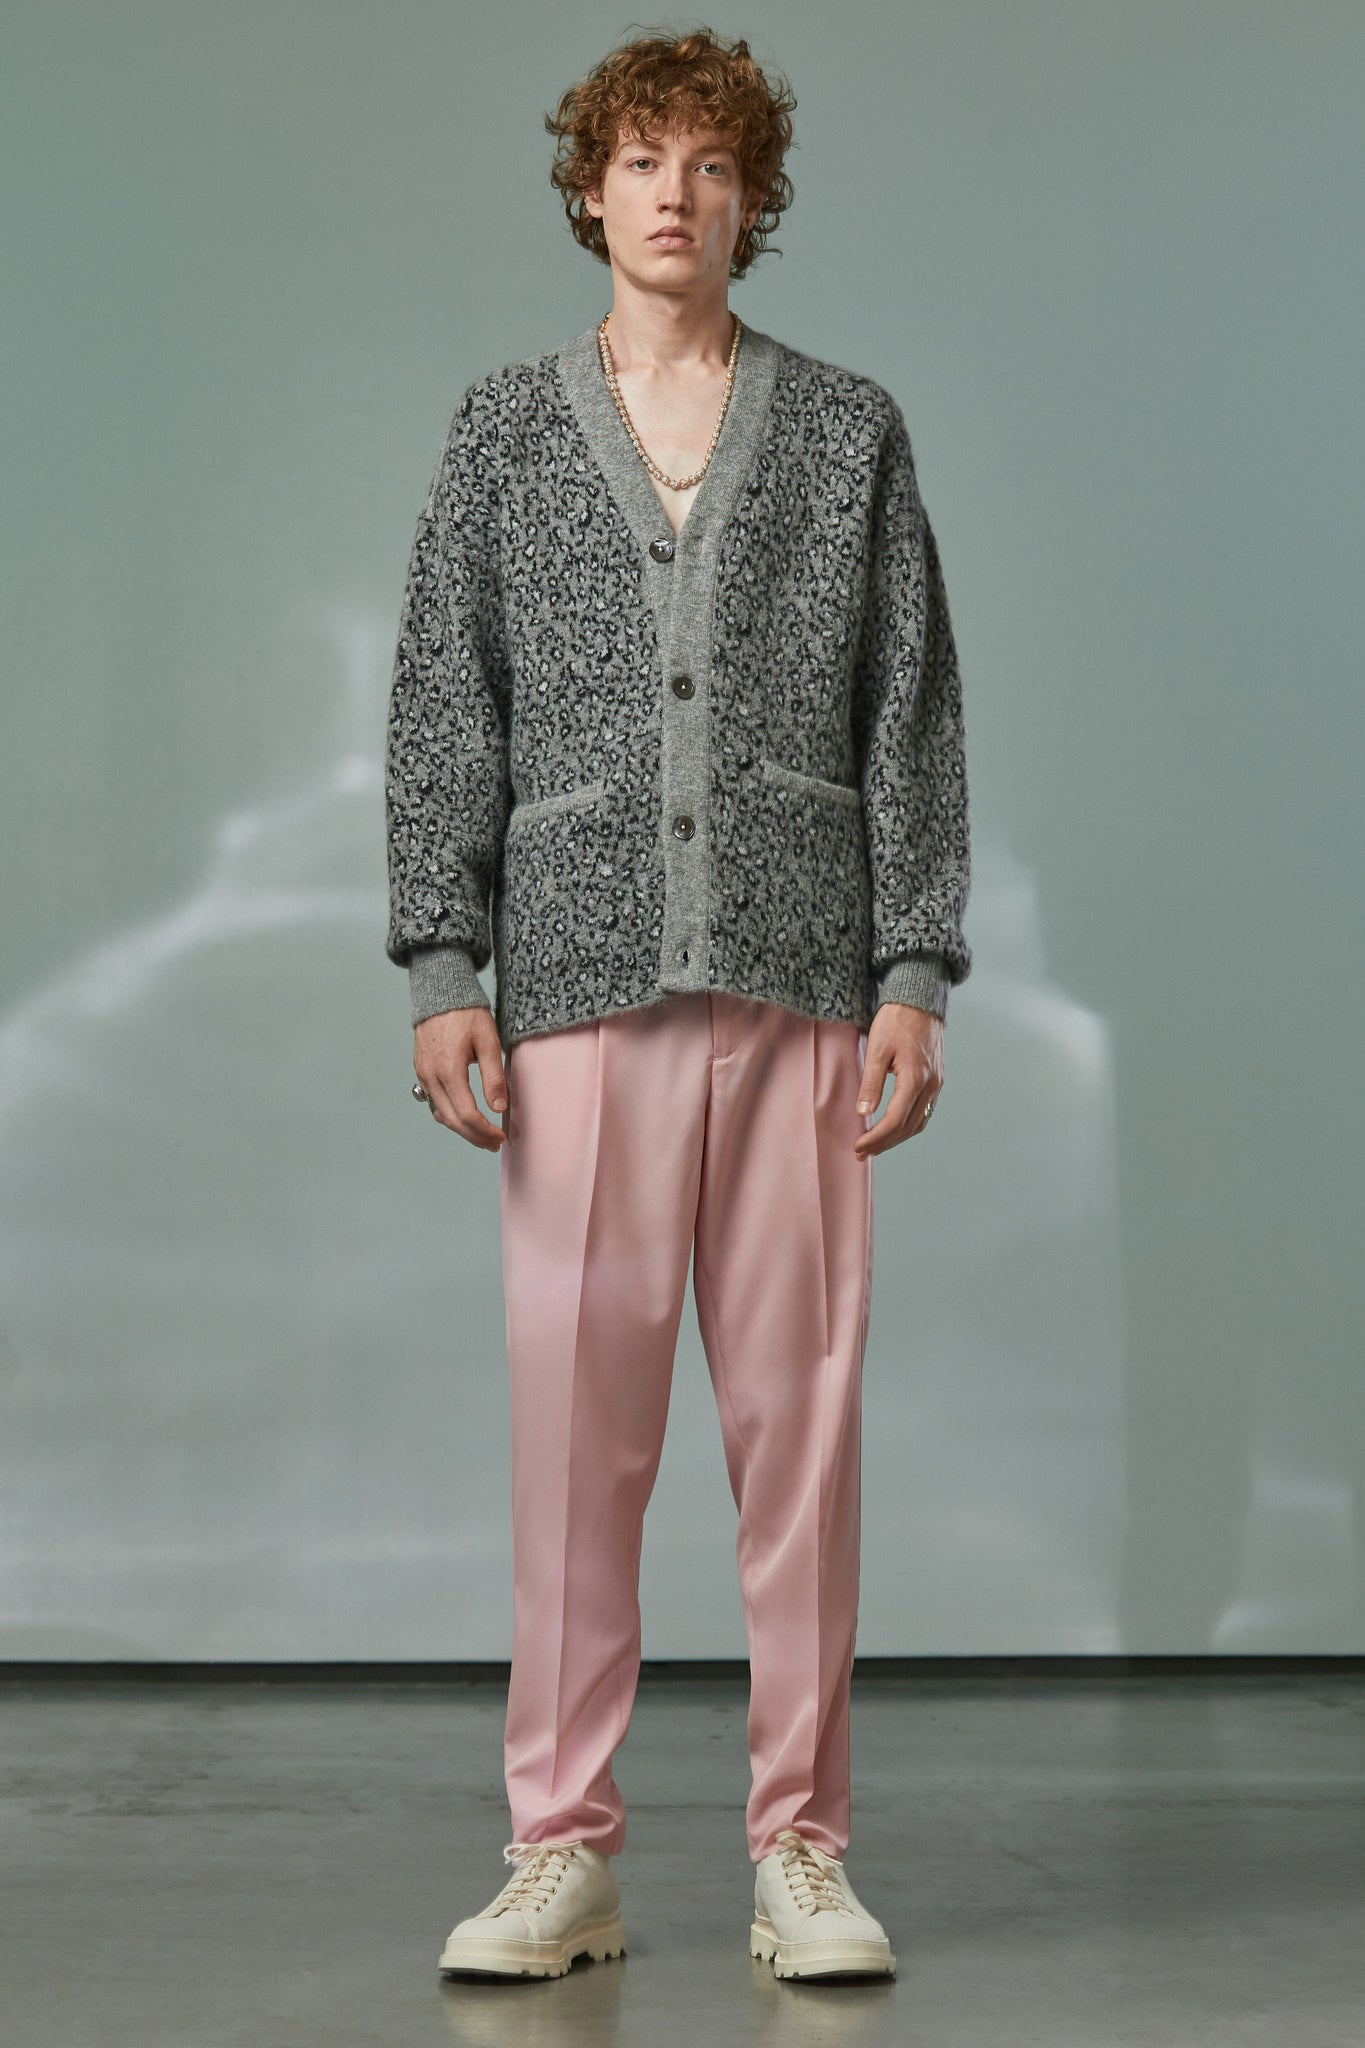 Spring 2020 Collection - Look 3 of 32 - Ovadia and Sons